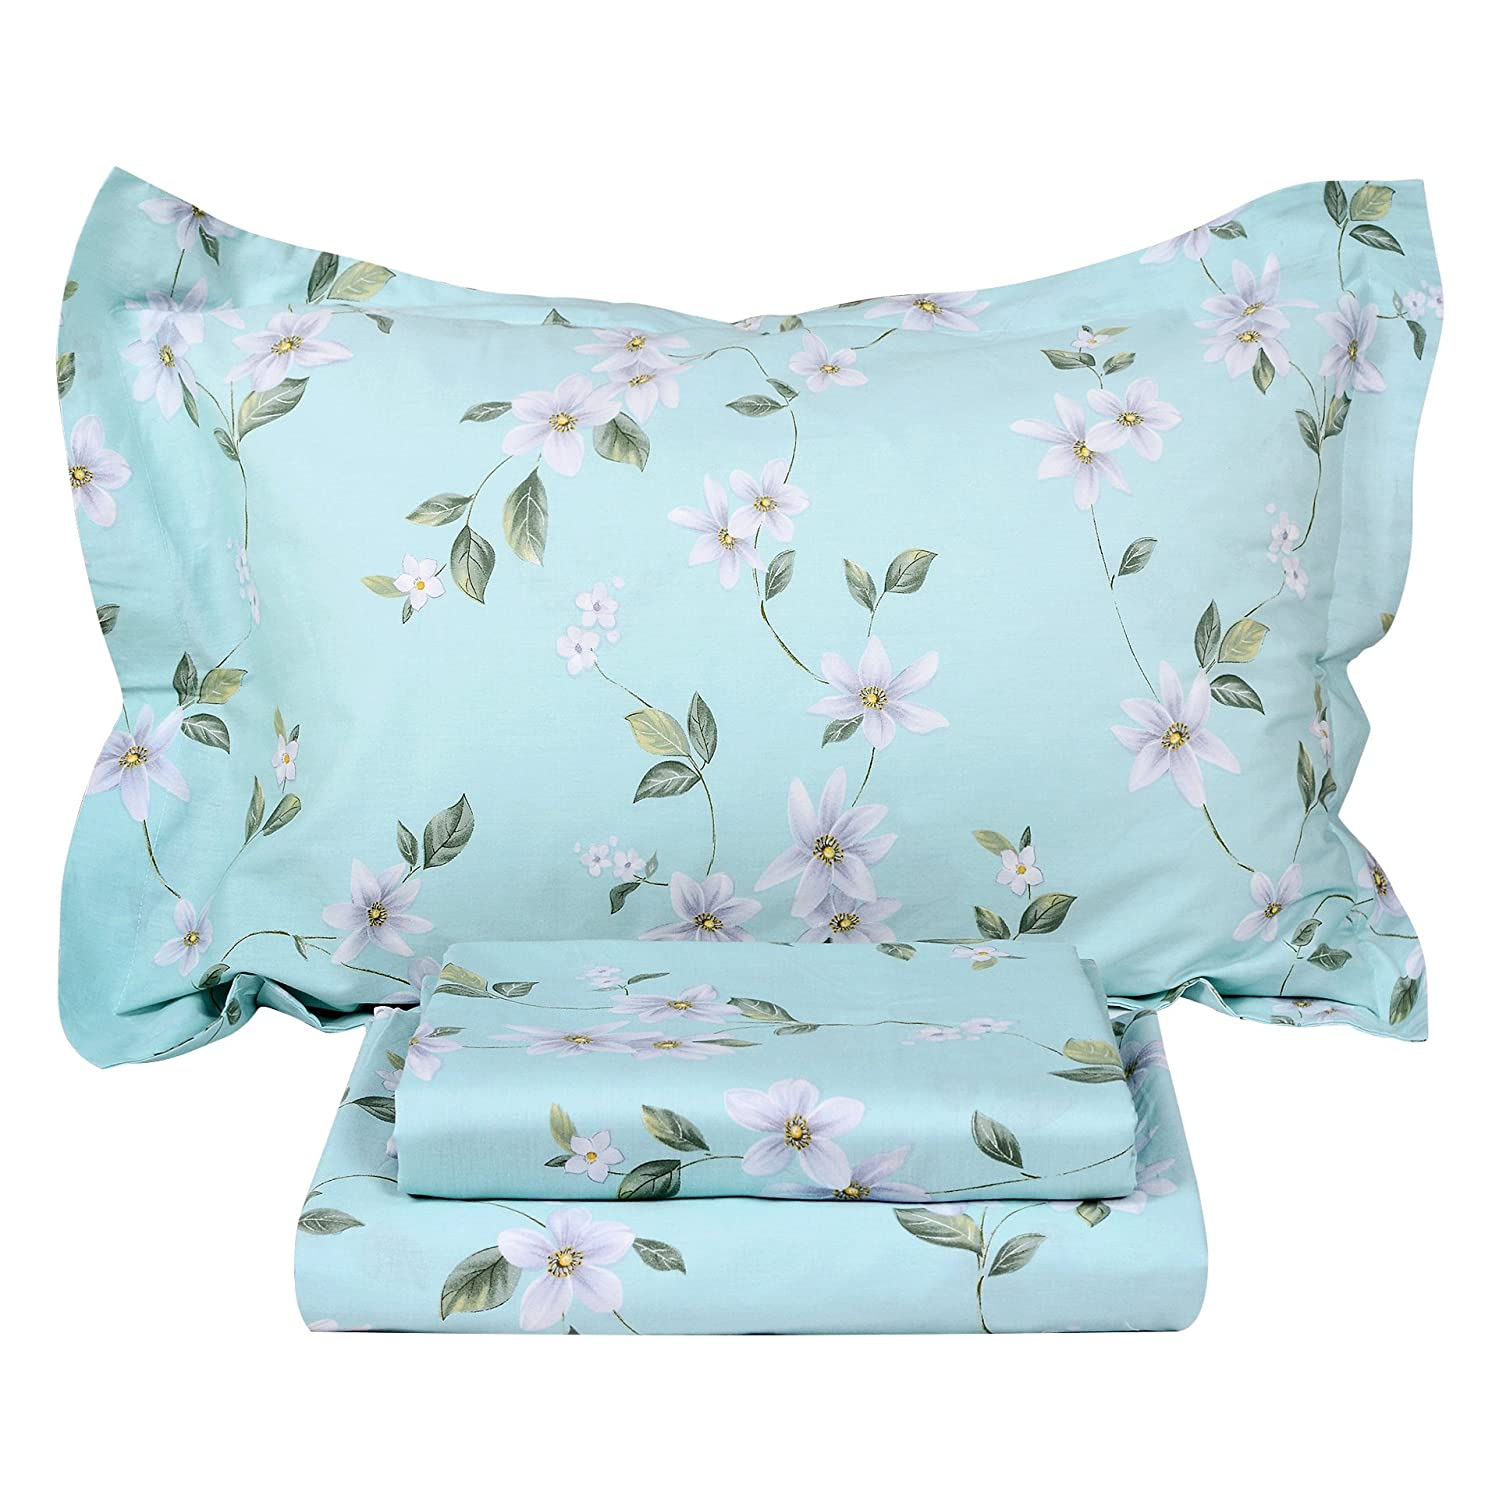 Green White Floral Queen FADFAY Cotton Bed Sheet Set bluee Hydrangea Floral Bed Sheets 4Piece King Size